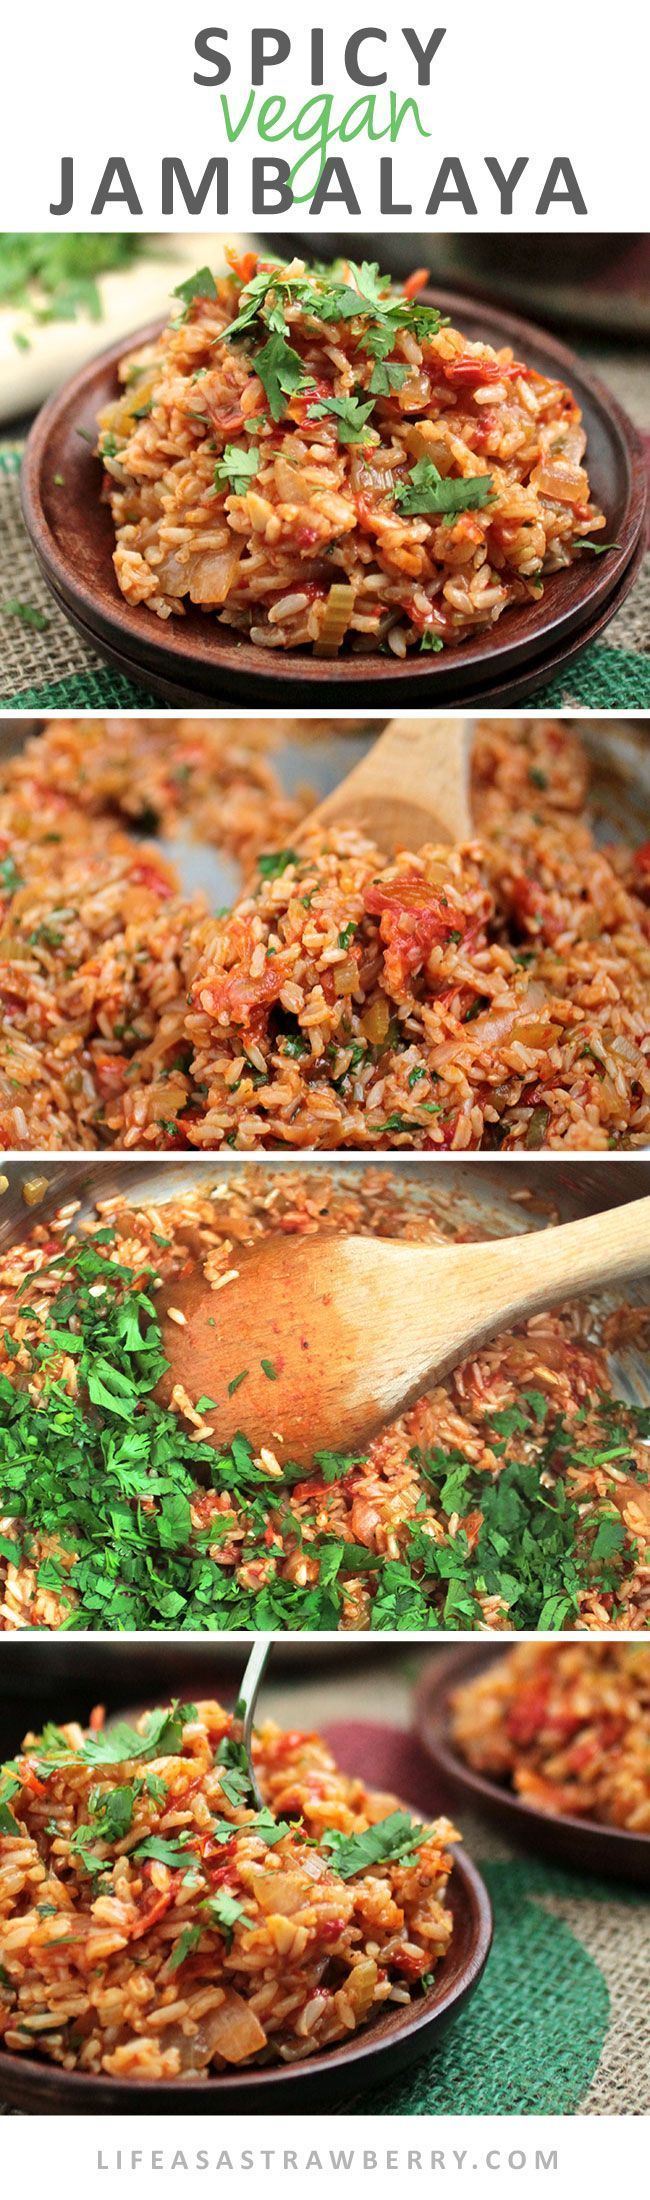 Spicy Vegan Jambalaya makes for an amazingly delicious & #healthy dinner